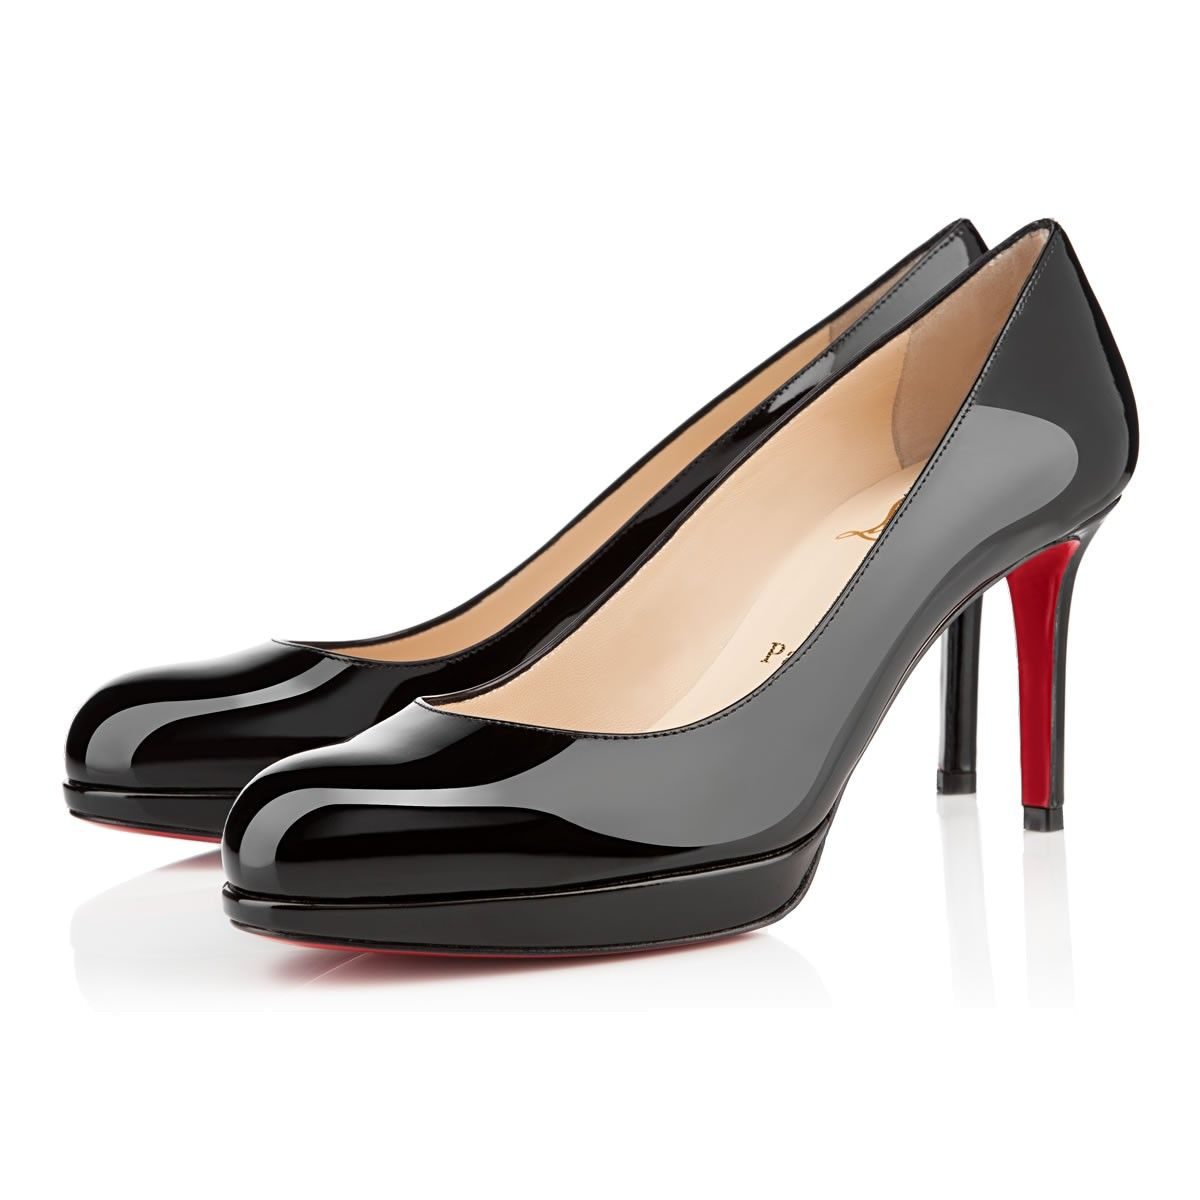 new styles 15e57 368b4 New Simple Pump 85 Black Patent Leather - Women Shoes ...